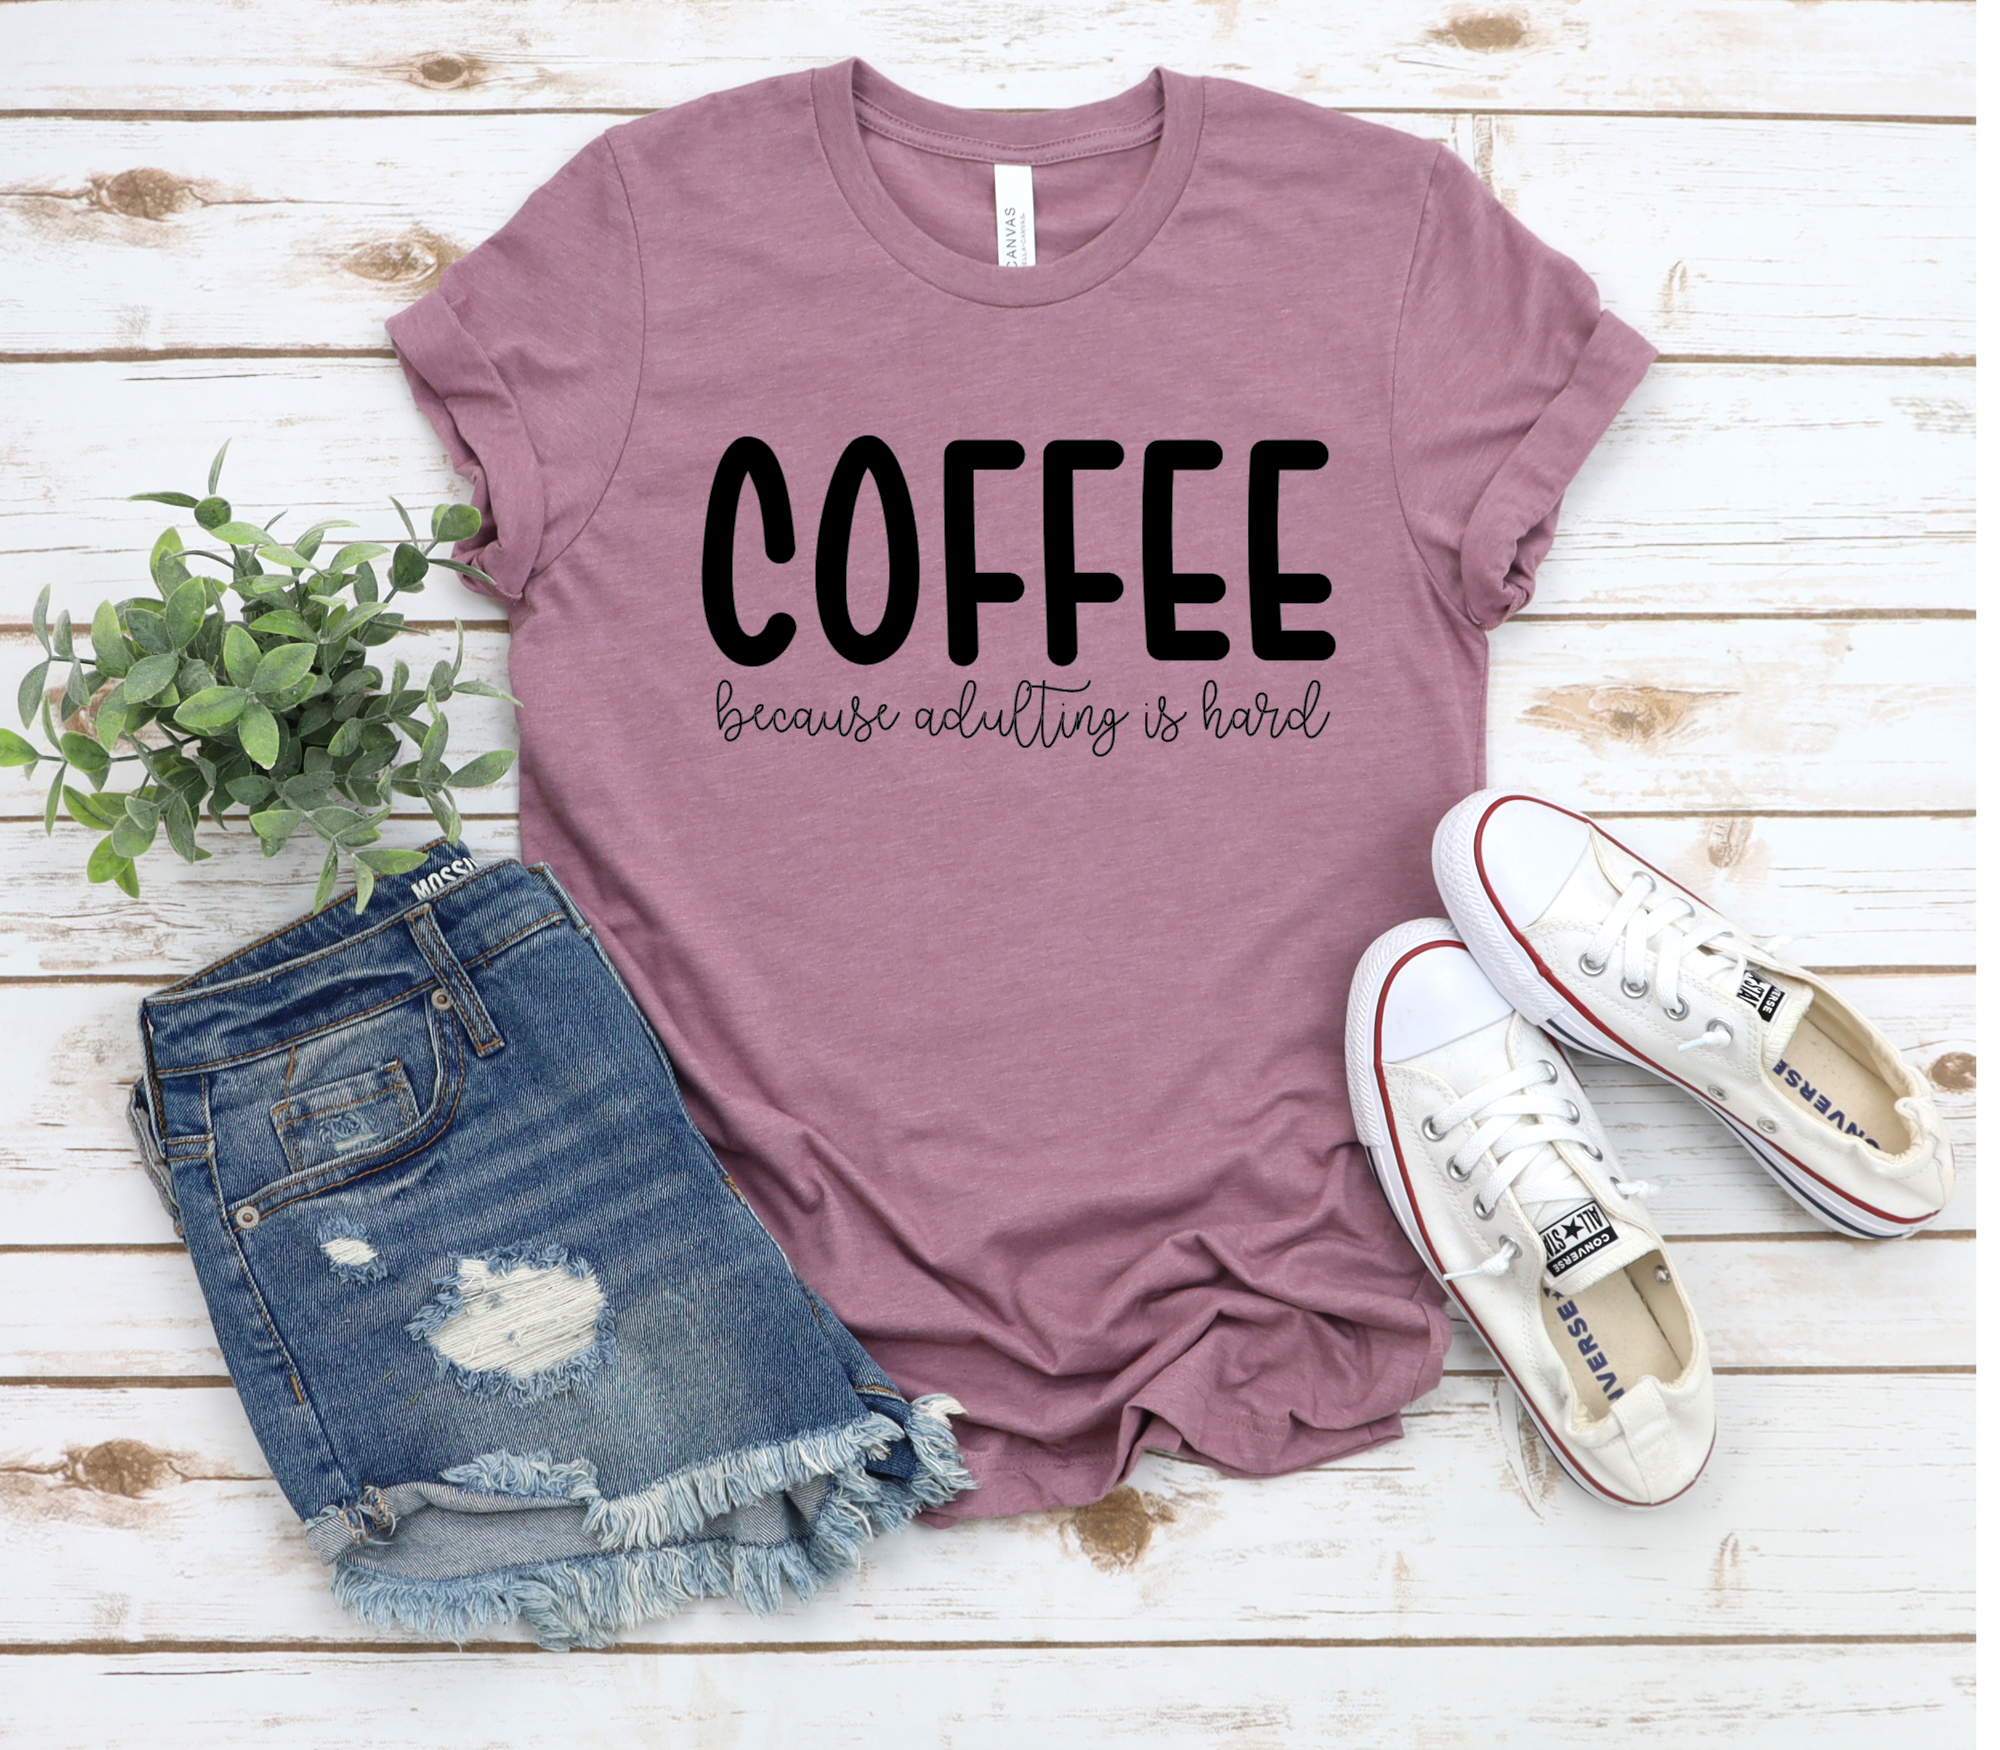 Coffee because Adulting is Hard, Coffee T-Shirt, Coffee Tee, Brunch Shirt,